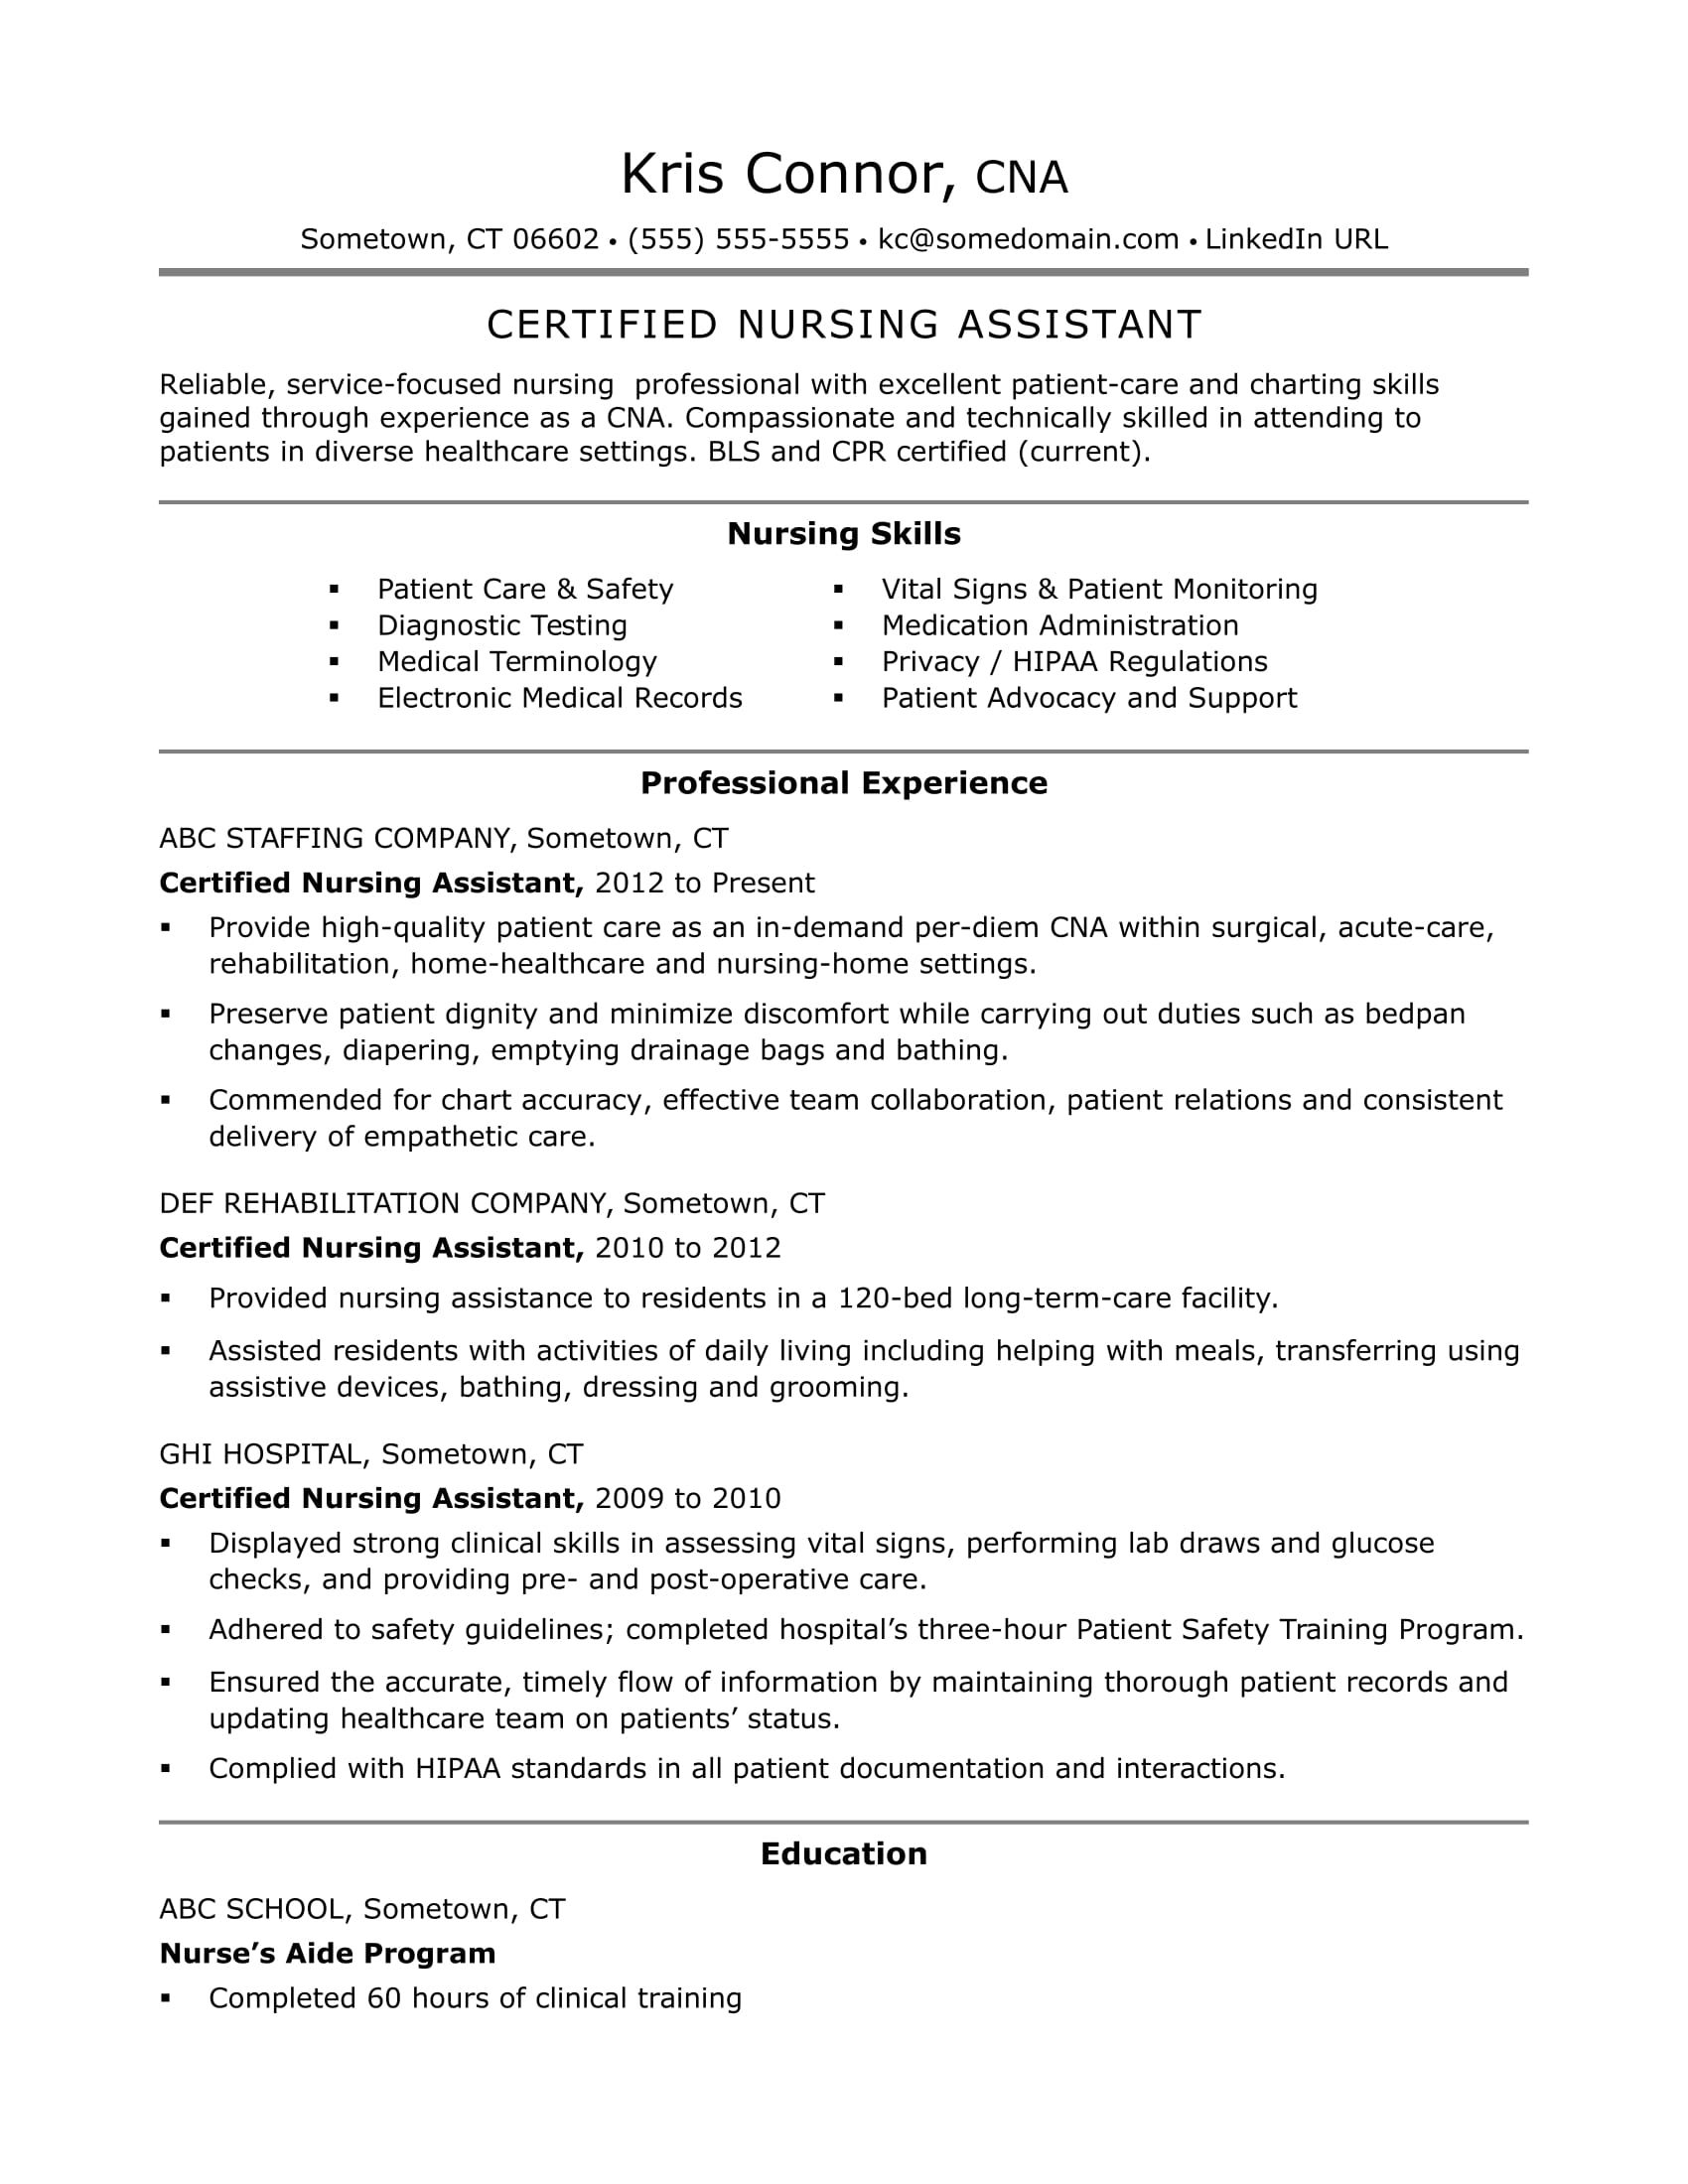 Cna resume examples skills for cnas monster certified nursing assistant resume template 1betcityfo Choice Image